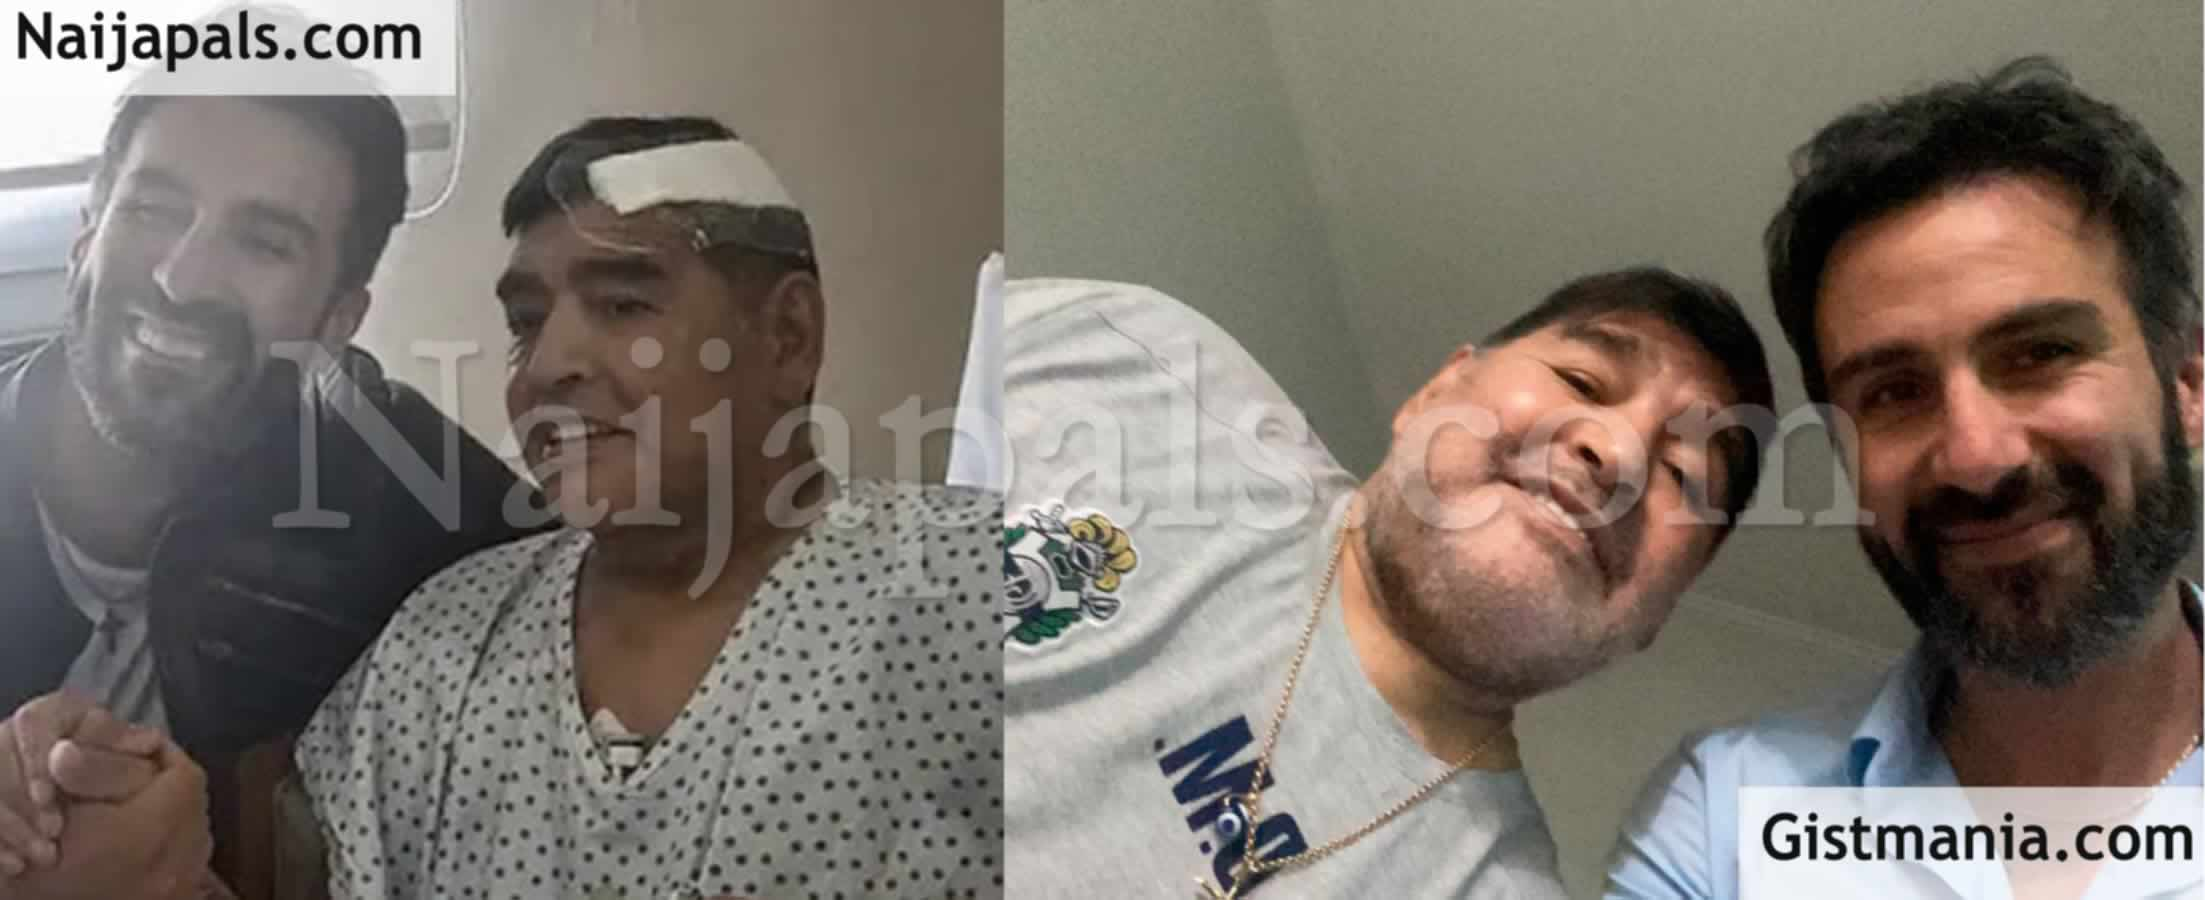 <img alt='.' class='lazyload' data-src='https://img.gistmania.com/emot/news.gif' /> <b>Doctor Who Performed Brain Surgery On Diego Maradona Faces Probe For Involuntary Manslaughter</b>